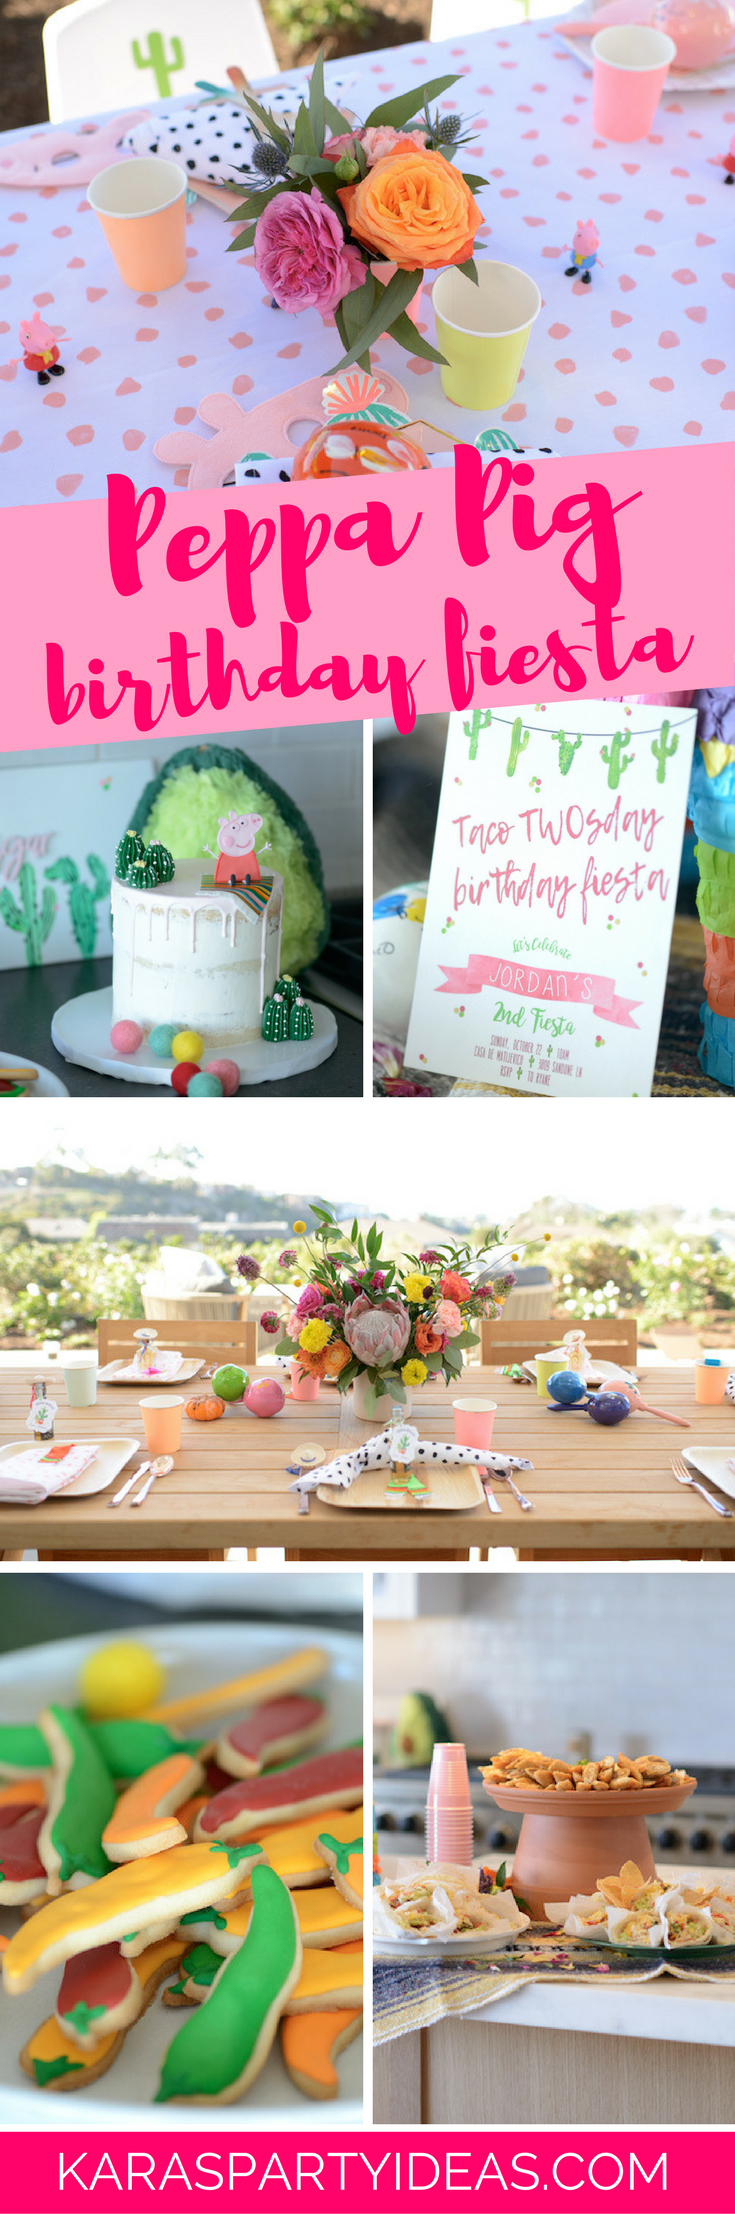 Peppa Pig Birthday Fiesta via Kara's Party Ideas - KarasPartyIdeas.com (1)